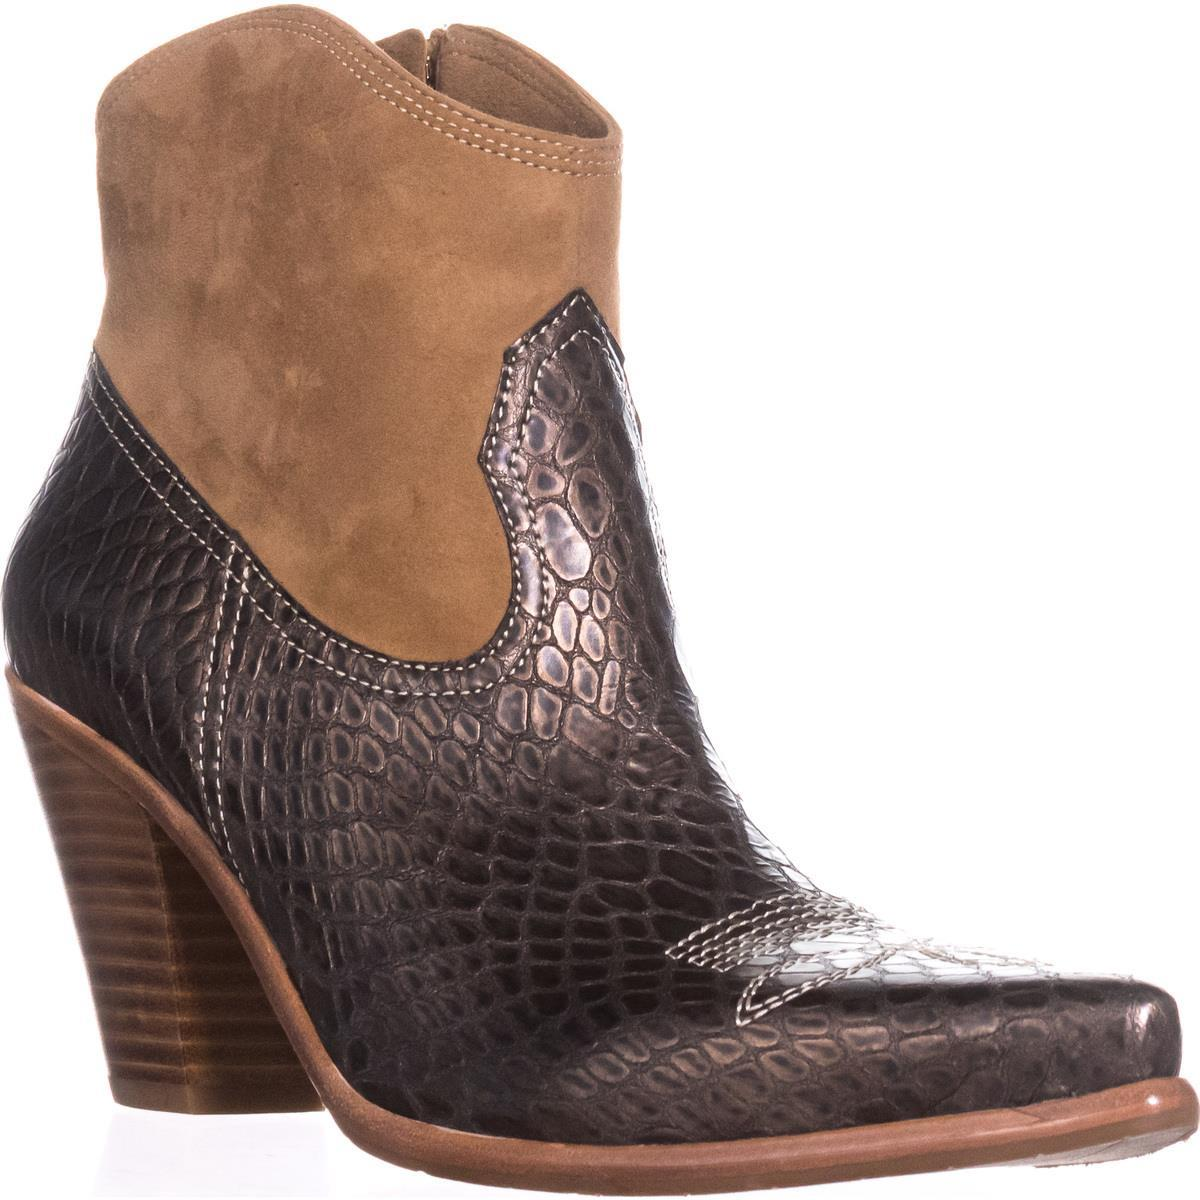 Womens Donald J Pliner Pablo Western Ankle Boots, Platino by Donald J Pliner